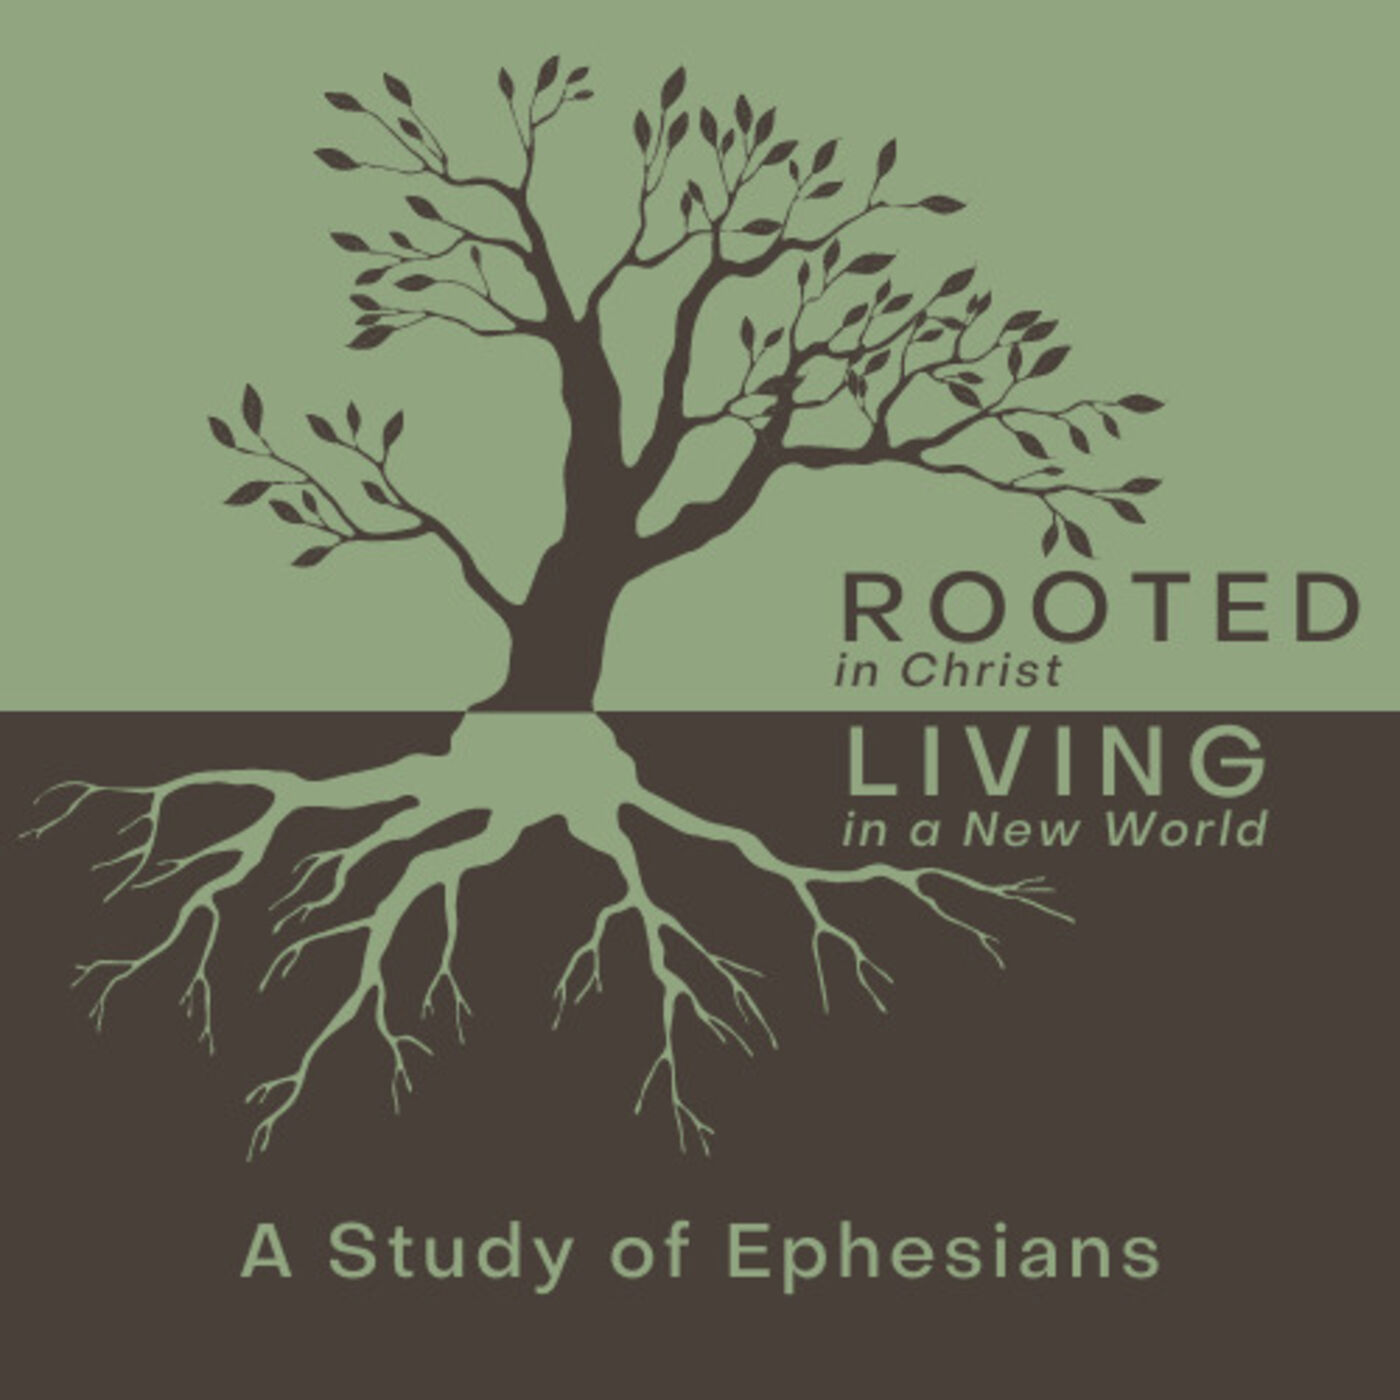 Rooted in Christ, Living in a New World: Peace in Christ